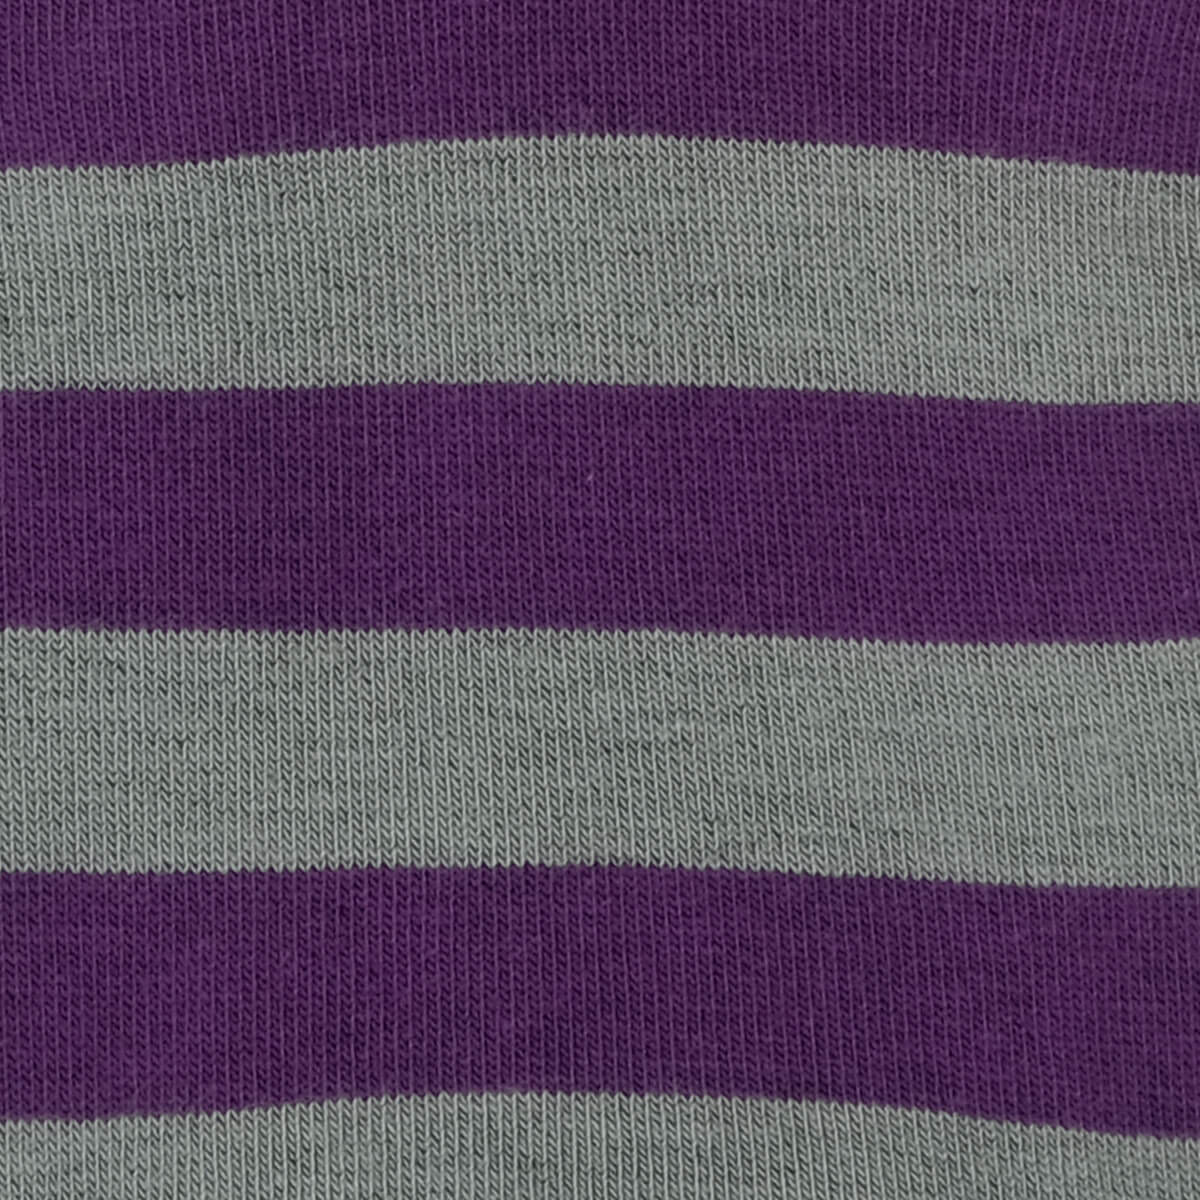 Womens Socks - Rugby Stripes Women's Socks - Purple⎪Etiquette Clothiers